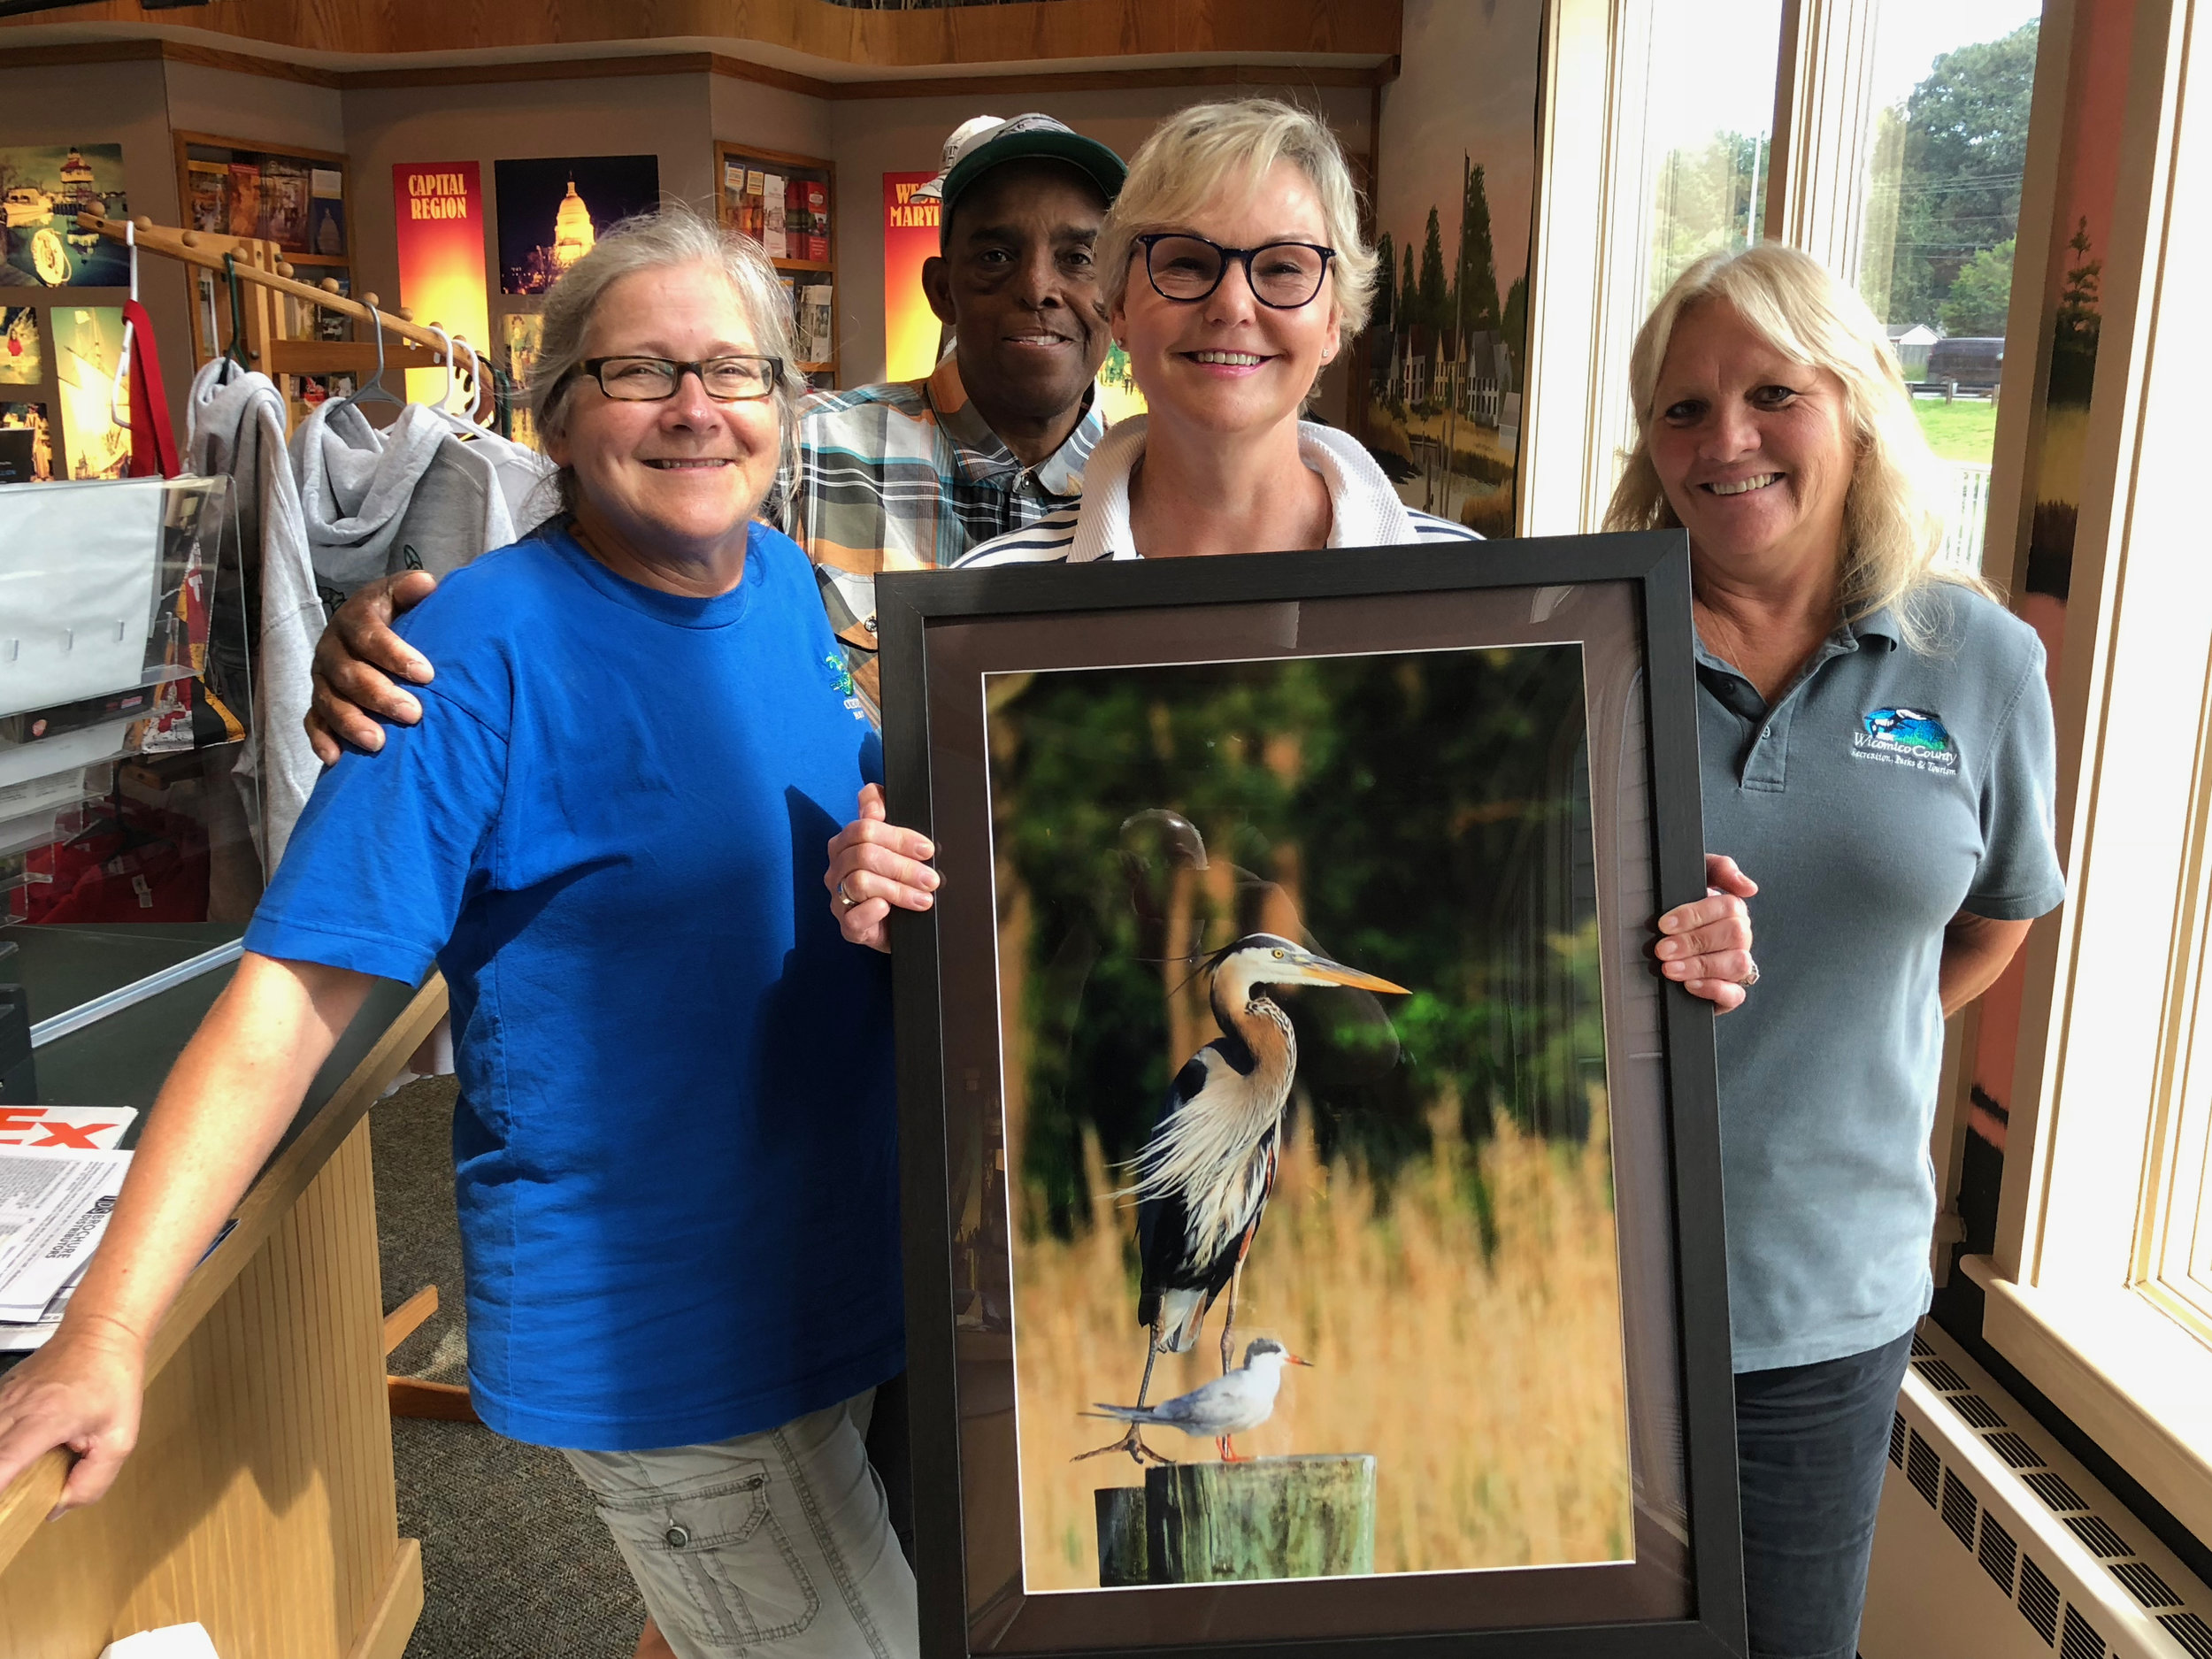 "The winner of the Wicomico County Photo Contest. My photograph ""TWO FRIENDS"" will be displayed at the Wicomico County Tourism Center in Salisbury, MD. Photo includes the staff members Stacy Cooper, Earl Donaldson and Debbie Littleton"